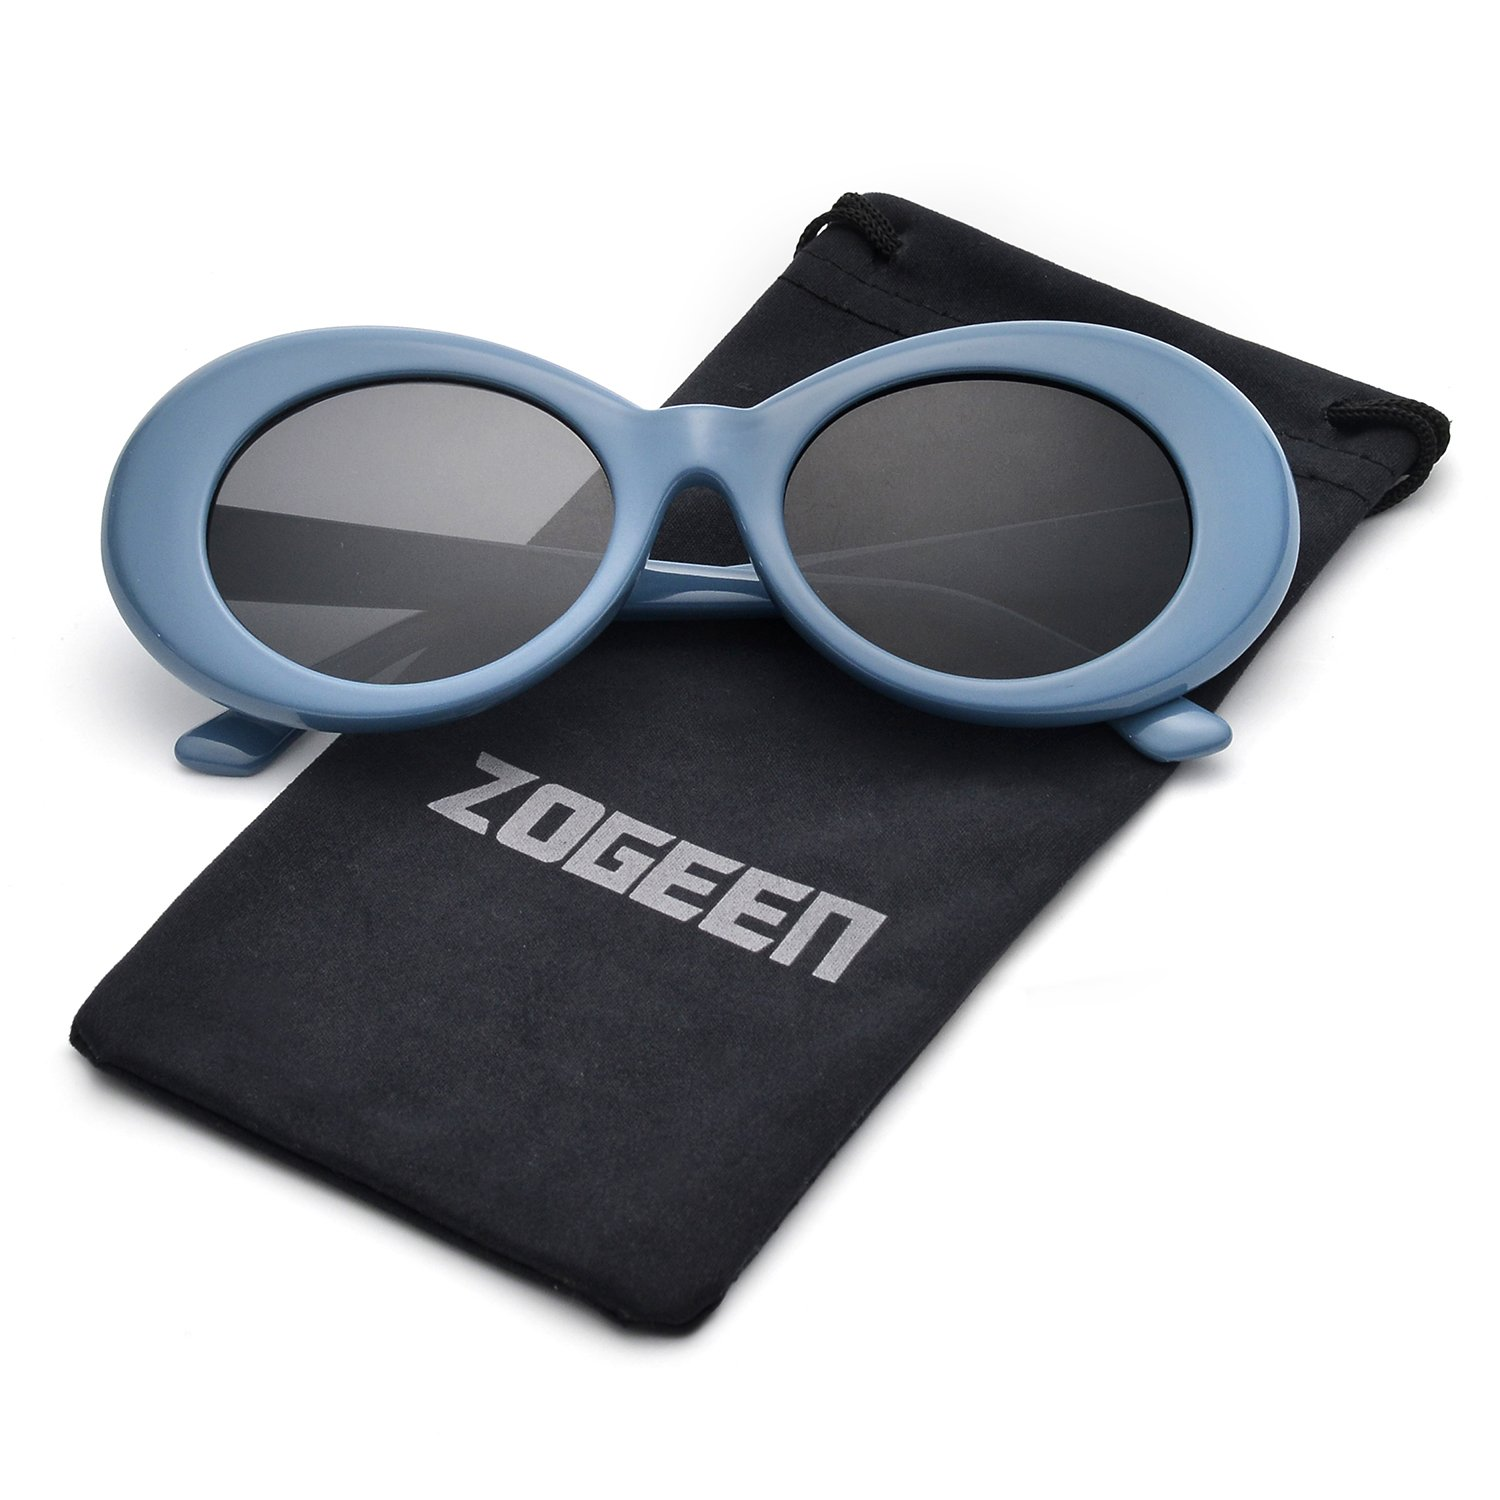 34e51bfa1a8 ZOGEEN Bold Retro Oval Mod Thick Frame Sunglasses Clout Goggles with Round  1212 (Blue Black)